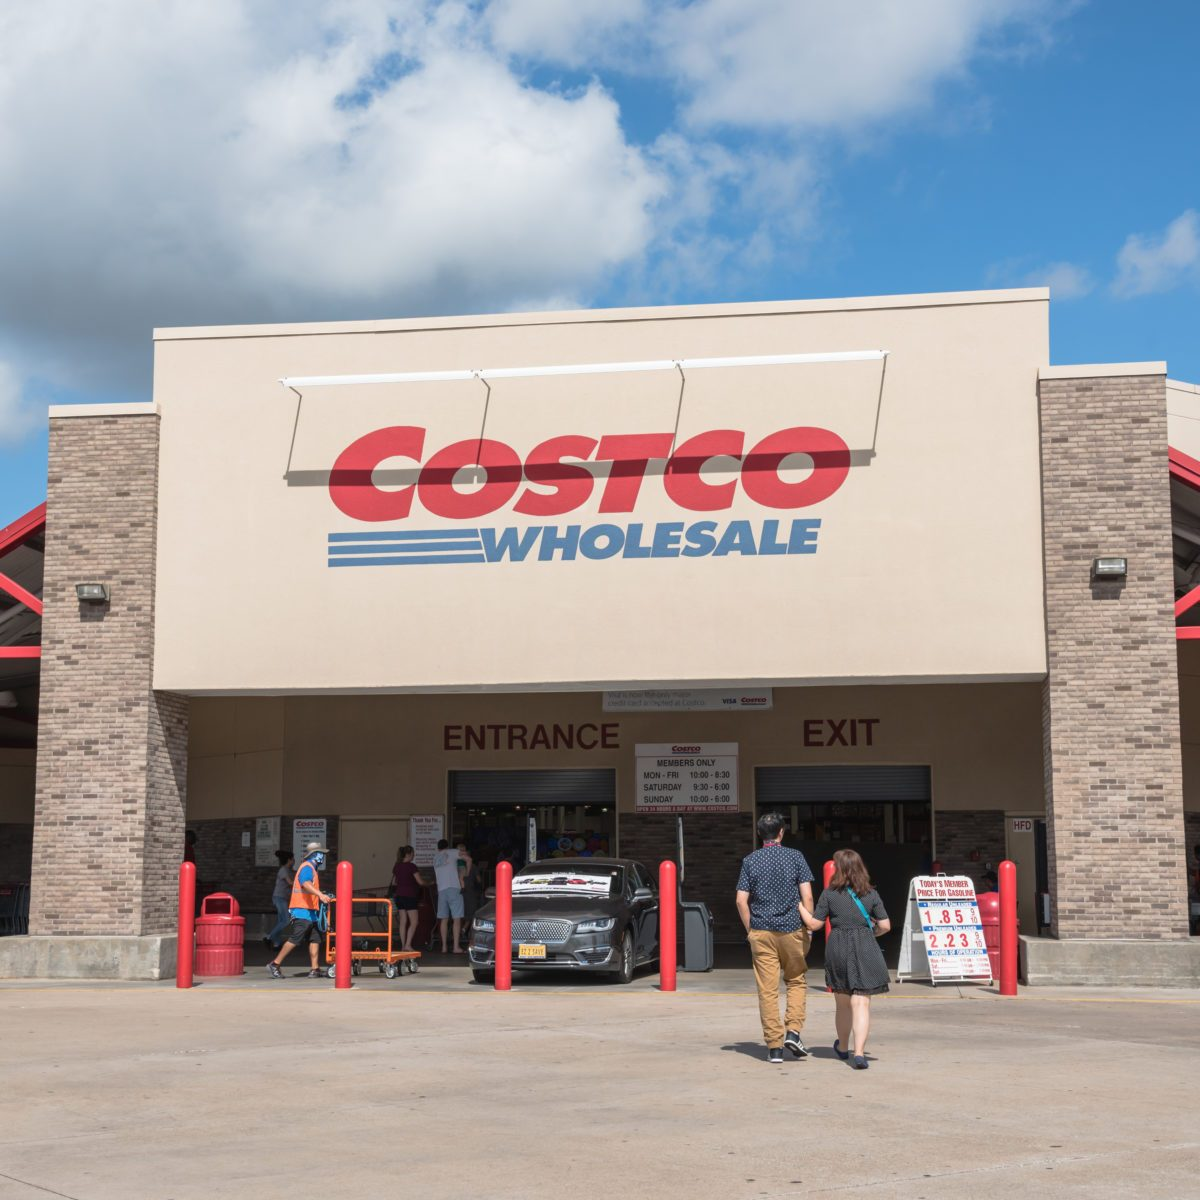 The One Amazing Perk of Getting a Gym Membership Through Costco